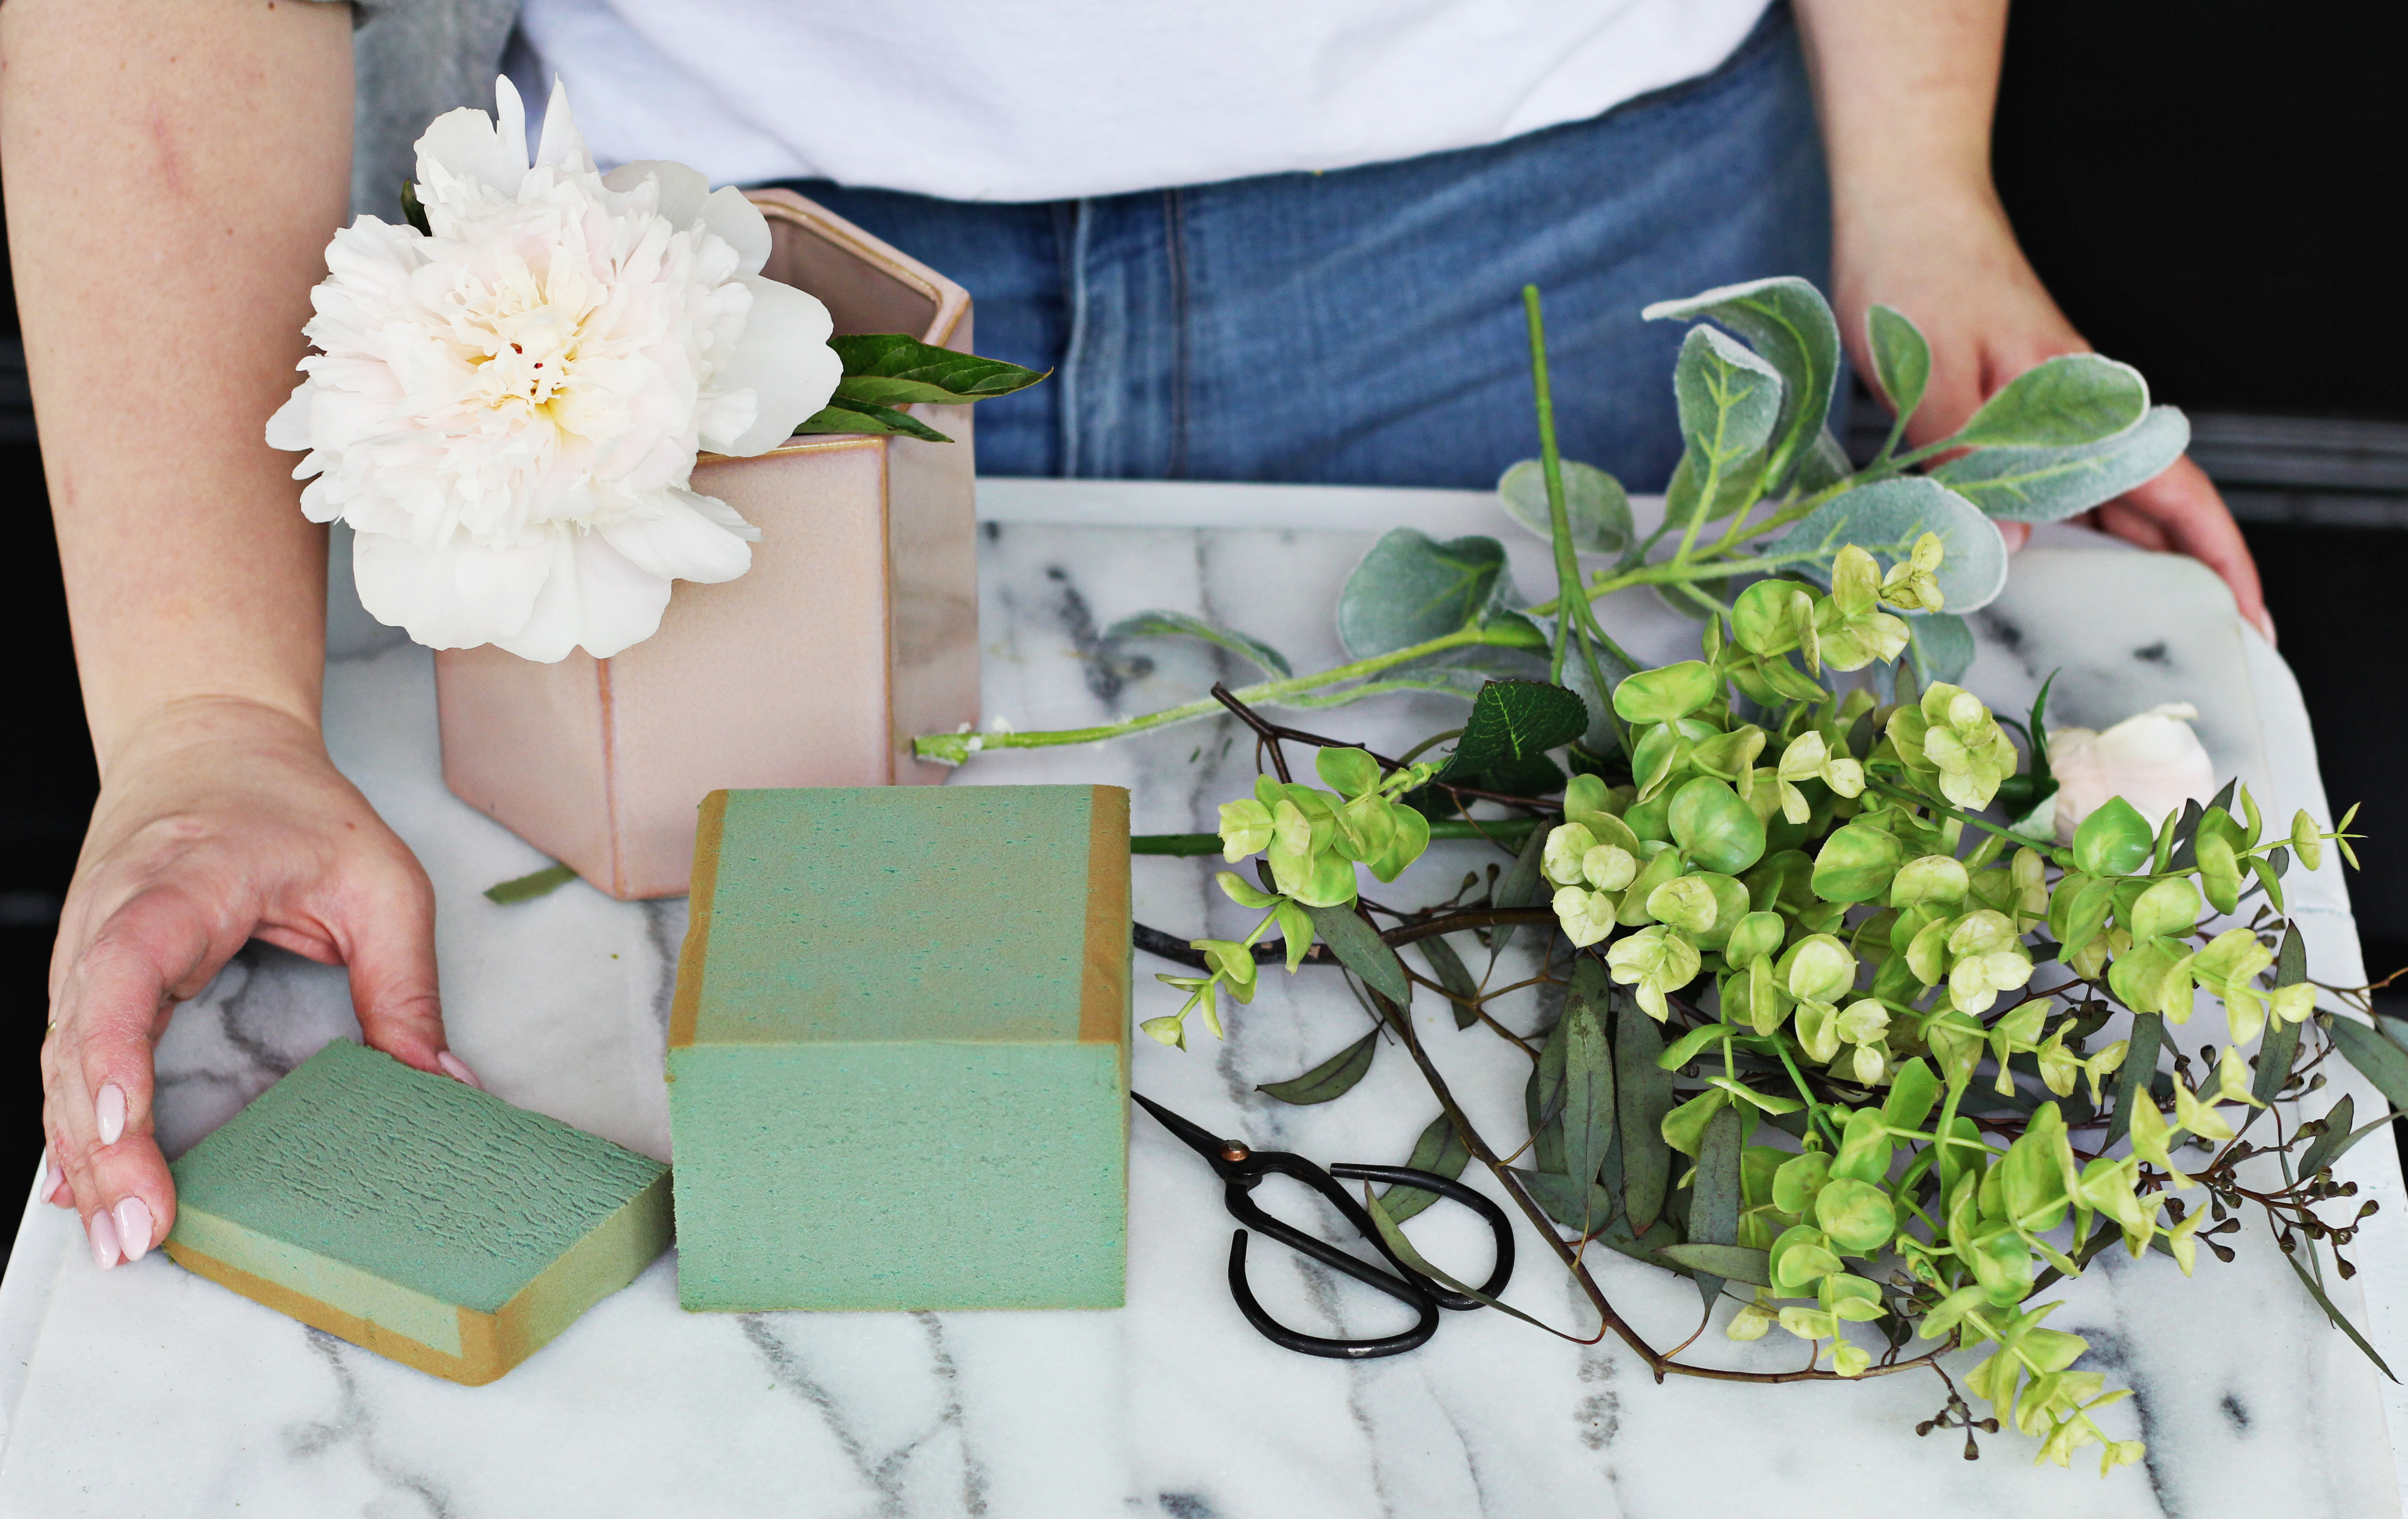 Choose a real statement flower, like a peony, and add faux greenery around it. No one will ever know!